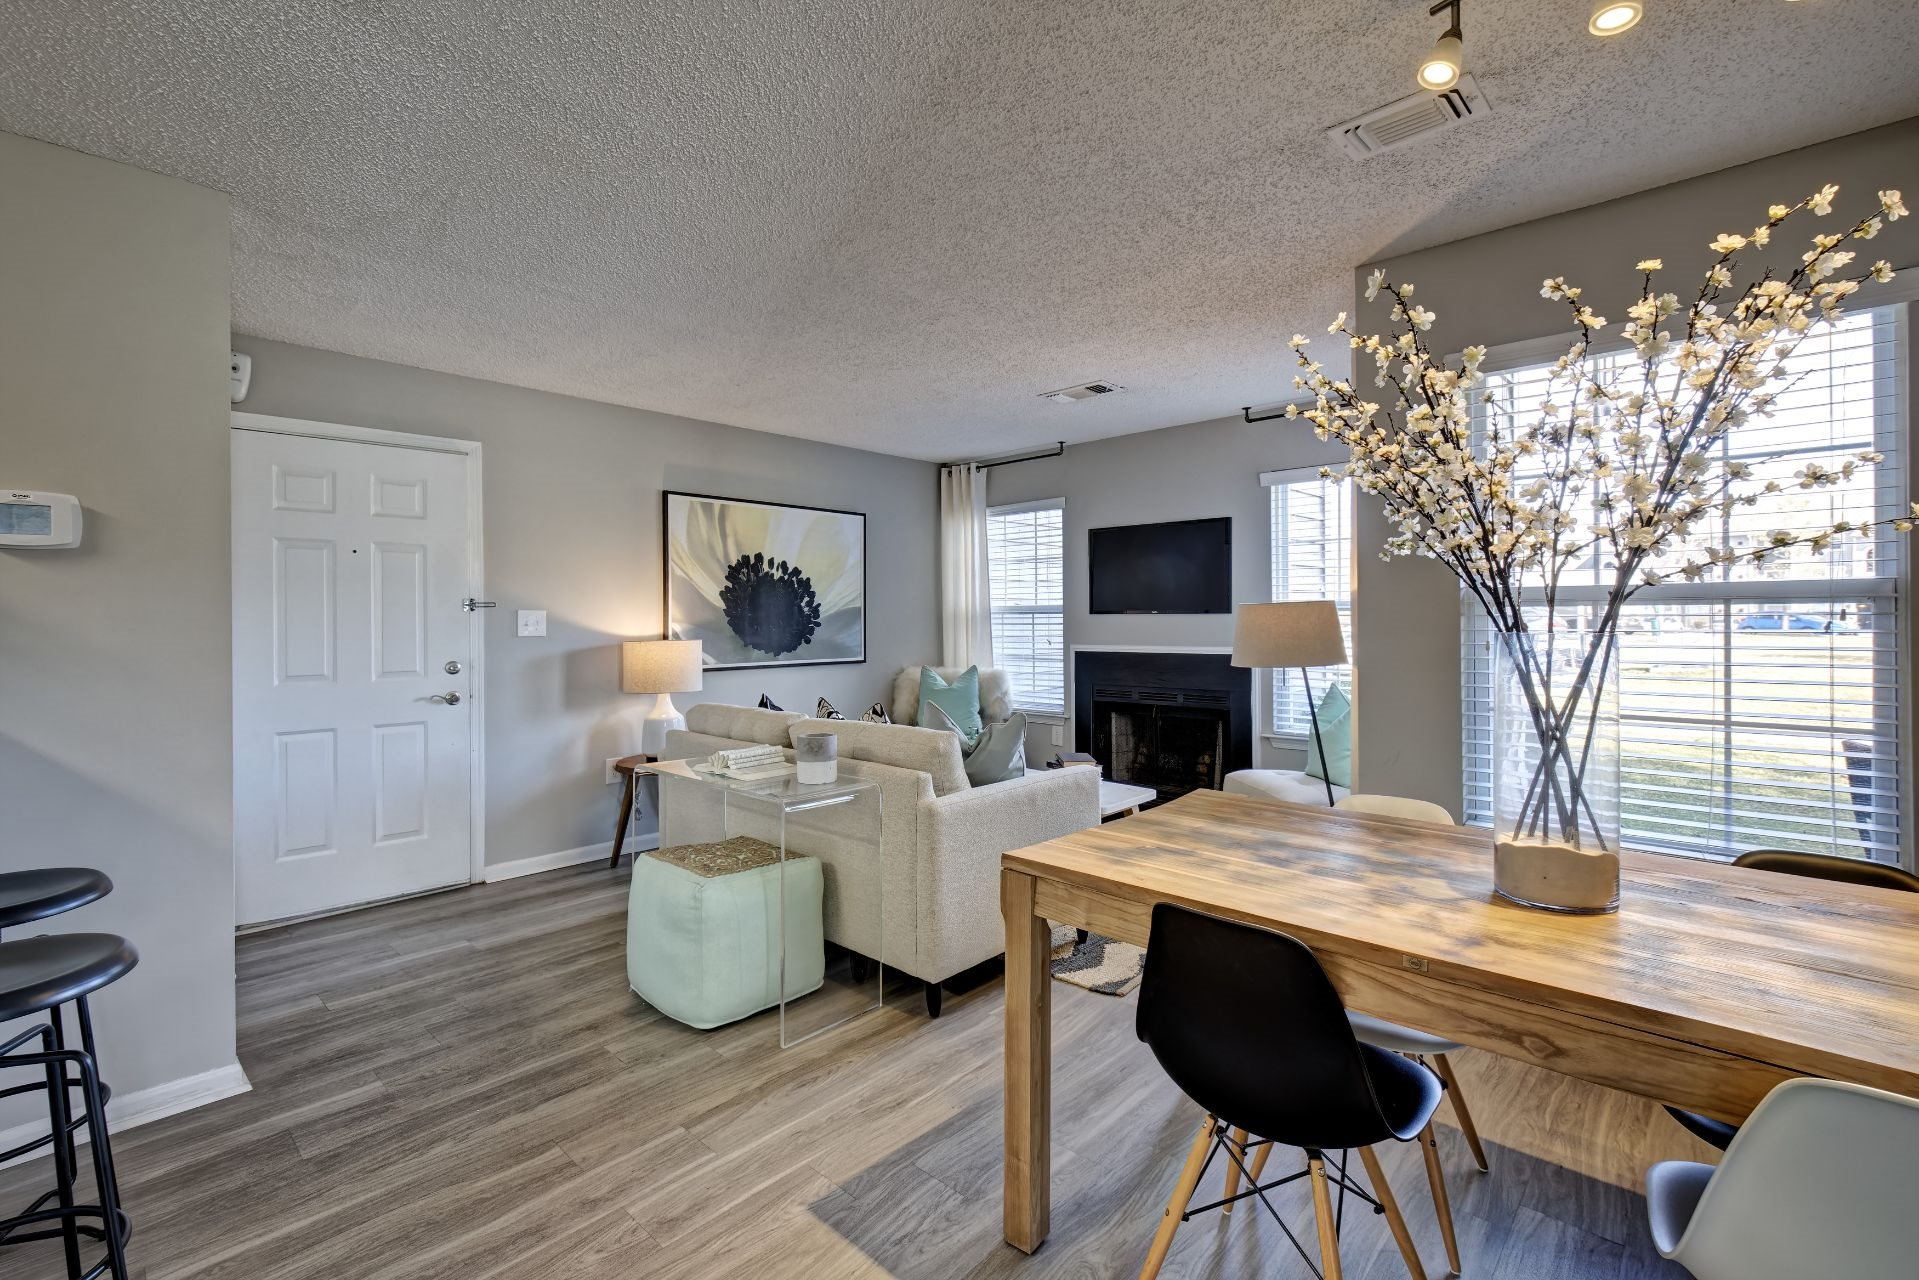 Newly Renovated 1, 2 and 3 Bedroom Apartments with Flex Space for Dining or Work-From-Home Office, Open-Concept Living Room with Wood Burning Fireplace, Picture Windows,  Private Patio or Balcony  in Lawrenceville NJ-1000 Steward Crossing Way Lawrenceville NJ 08646